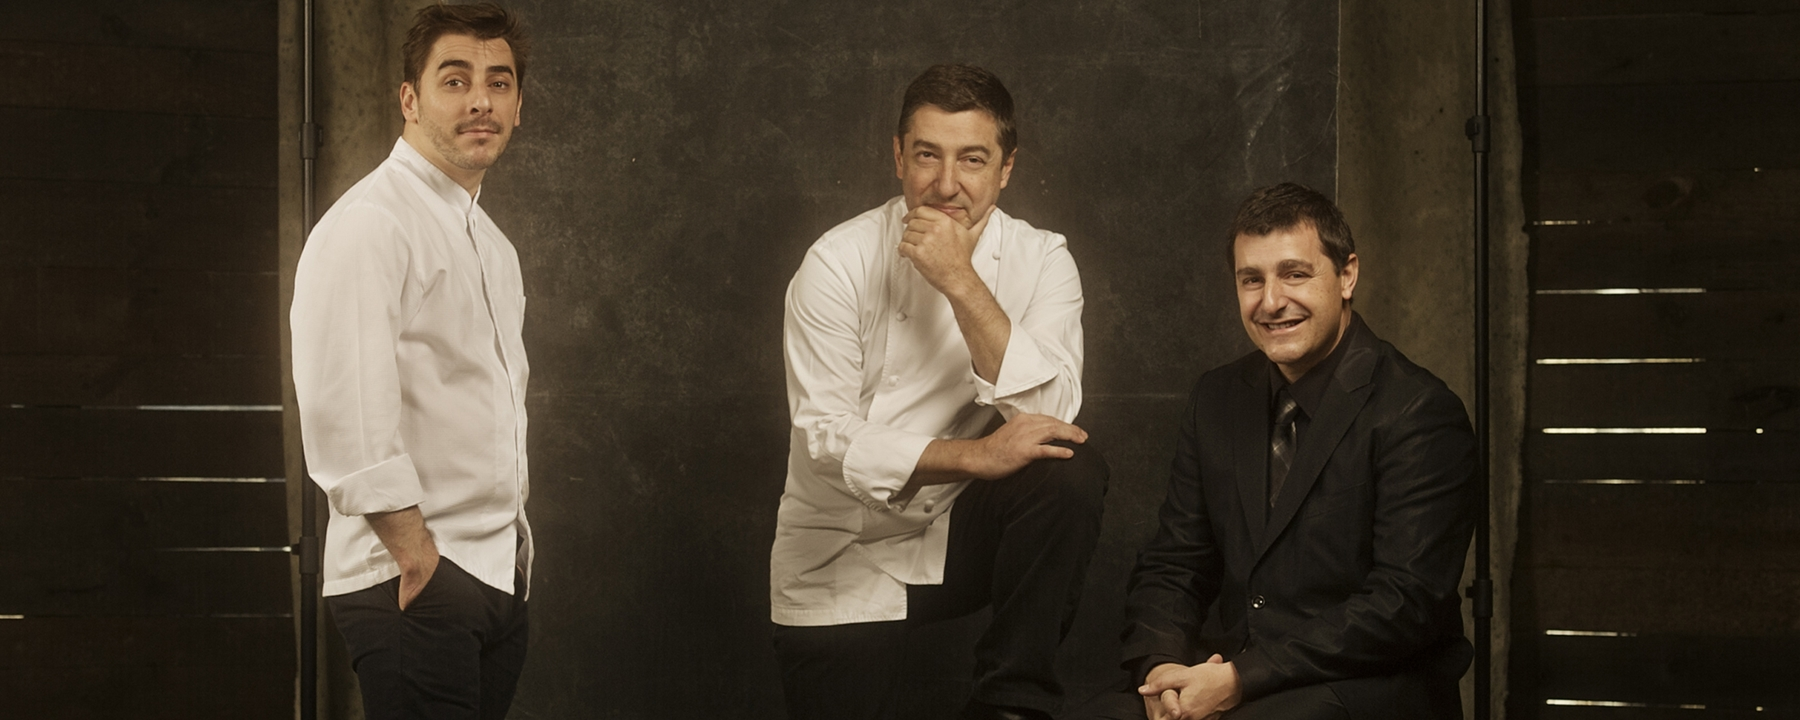 Germans Roca  David Ruano  El Celler de Can Roca (3)